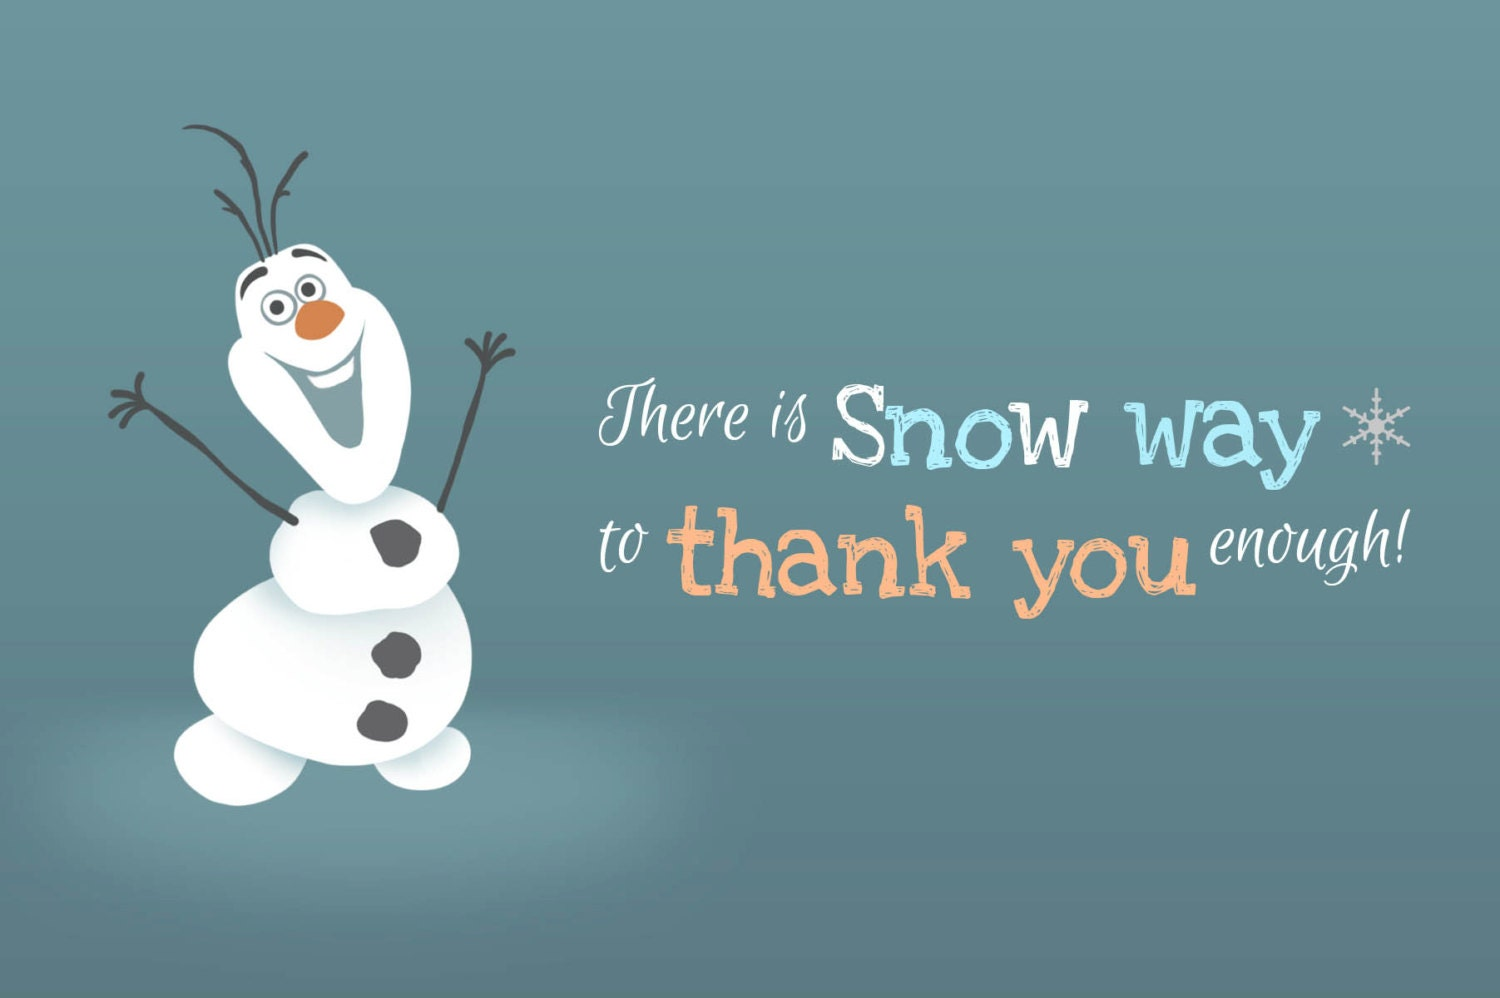 Frozen Thank You Card 4x6 by MissMurrayDesign on Etsy: https://www.etsy.com/listing/179719368/frozen-thank-you-card-4x6